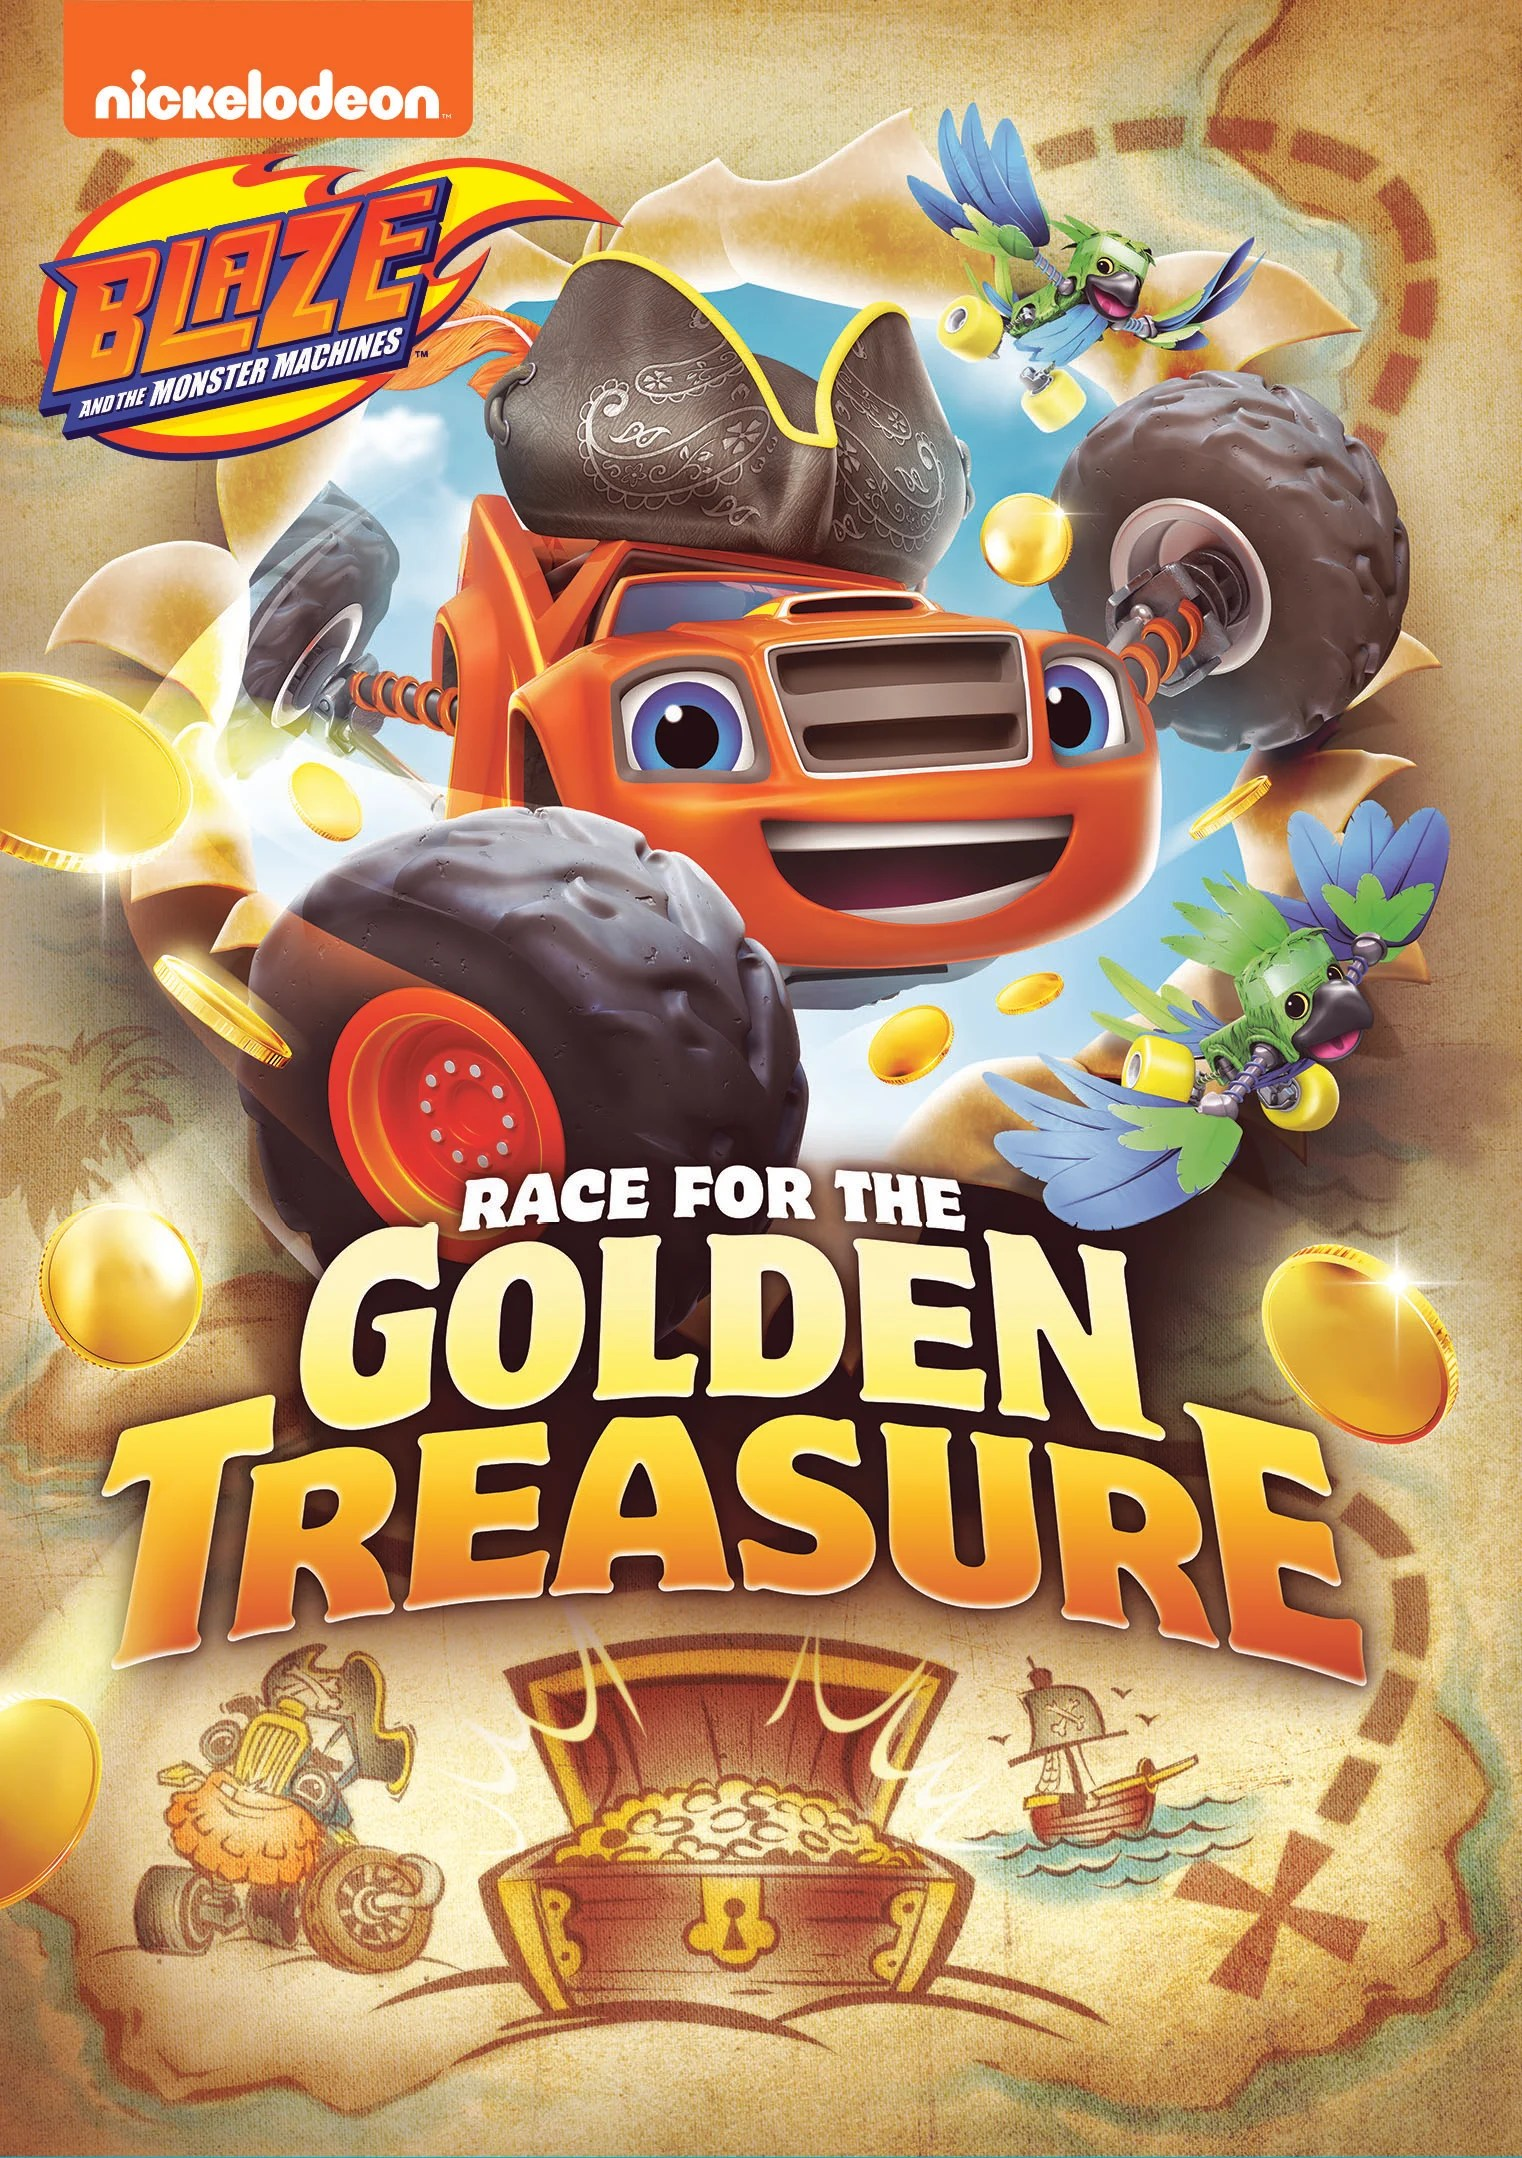 Blaze and the Monster Machines are speeding back onto DVD for all-new high-speed, high seas adventures inBlaze and the Monster Machines: Race for the Golden Treasure!Arriving on July 28, 2020, preschoolers can race along with Blaze and his friends as they embark on epic action-packed treasure hunts.